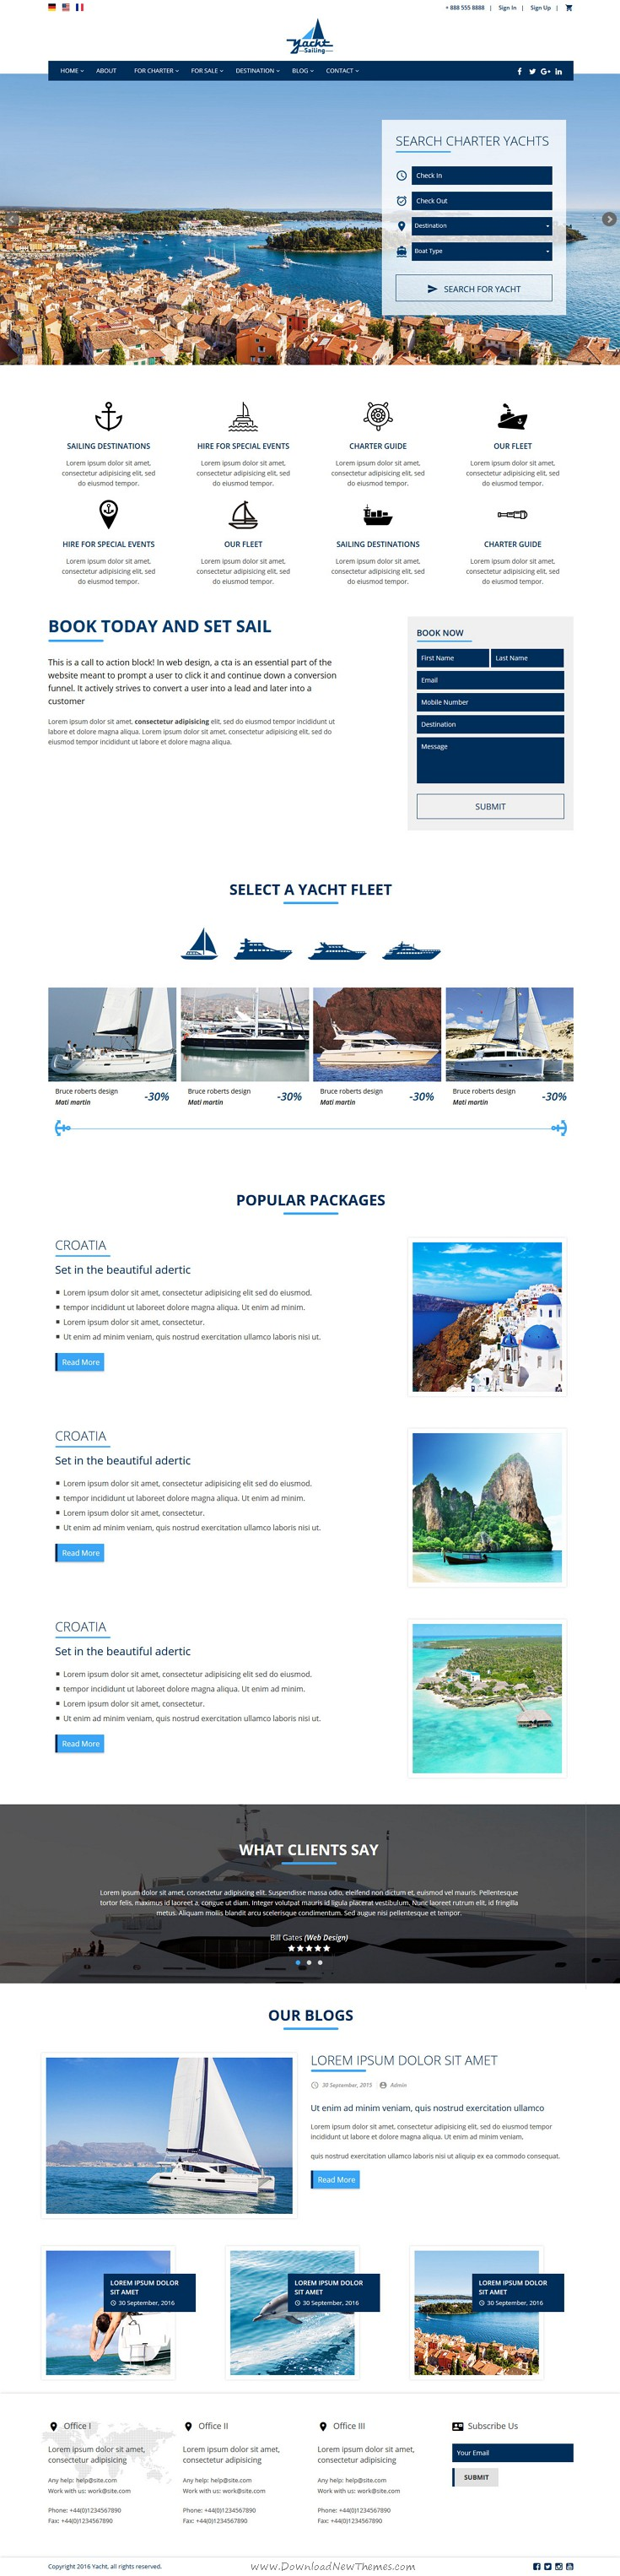 Yacht Sailing - Marine Charter Booking - Selling template | Business ...